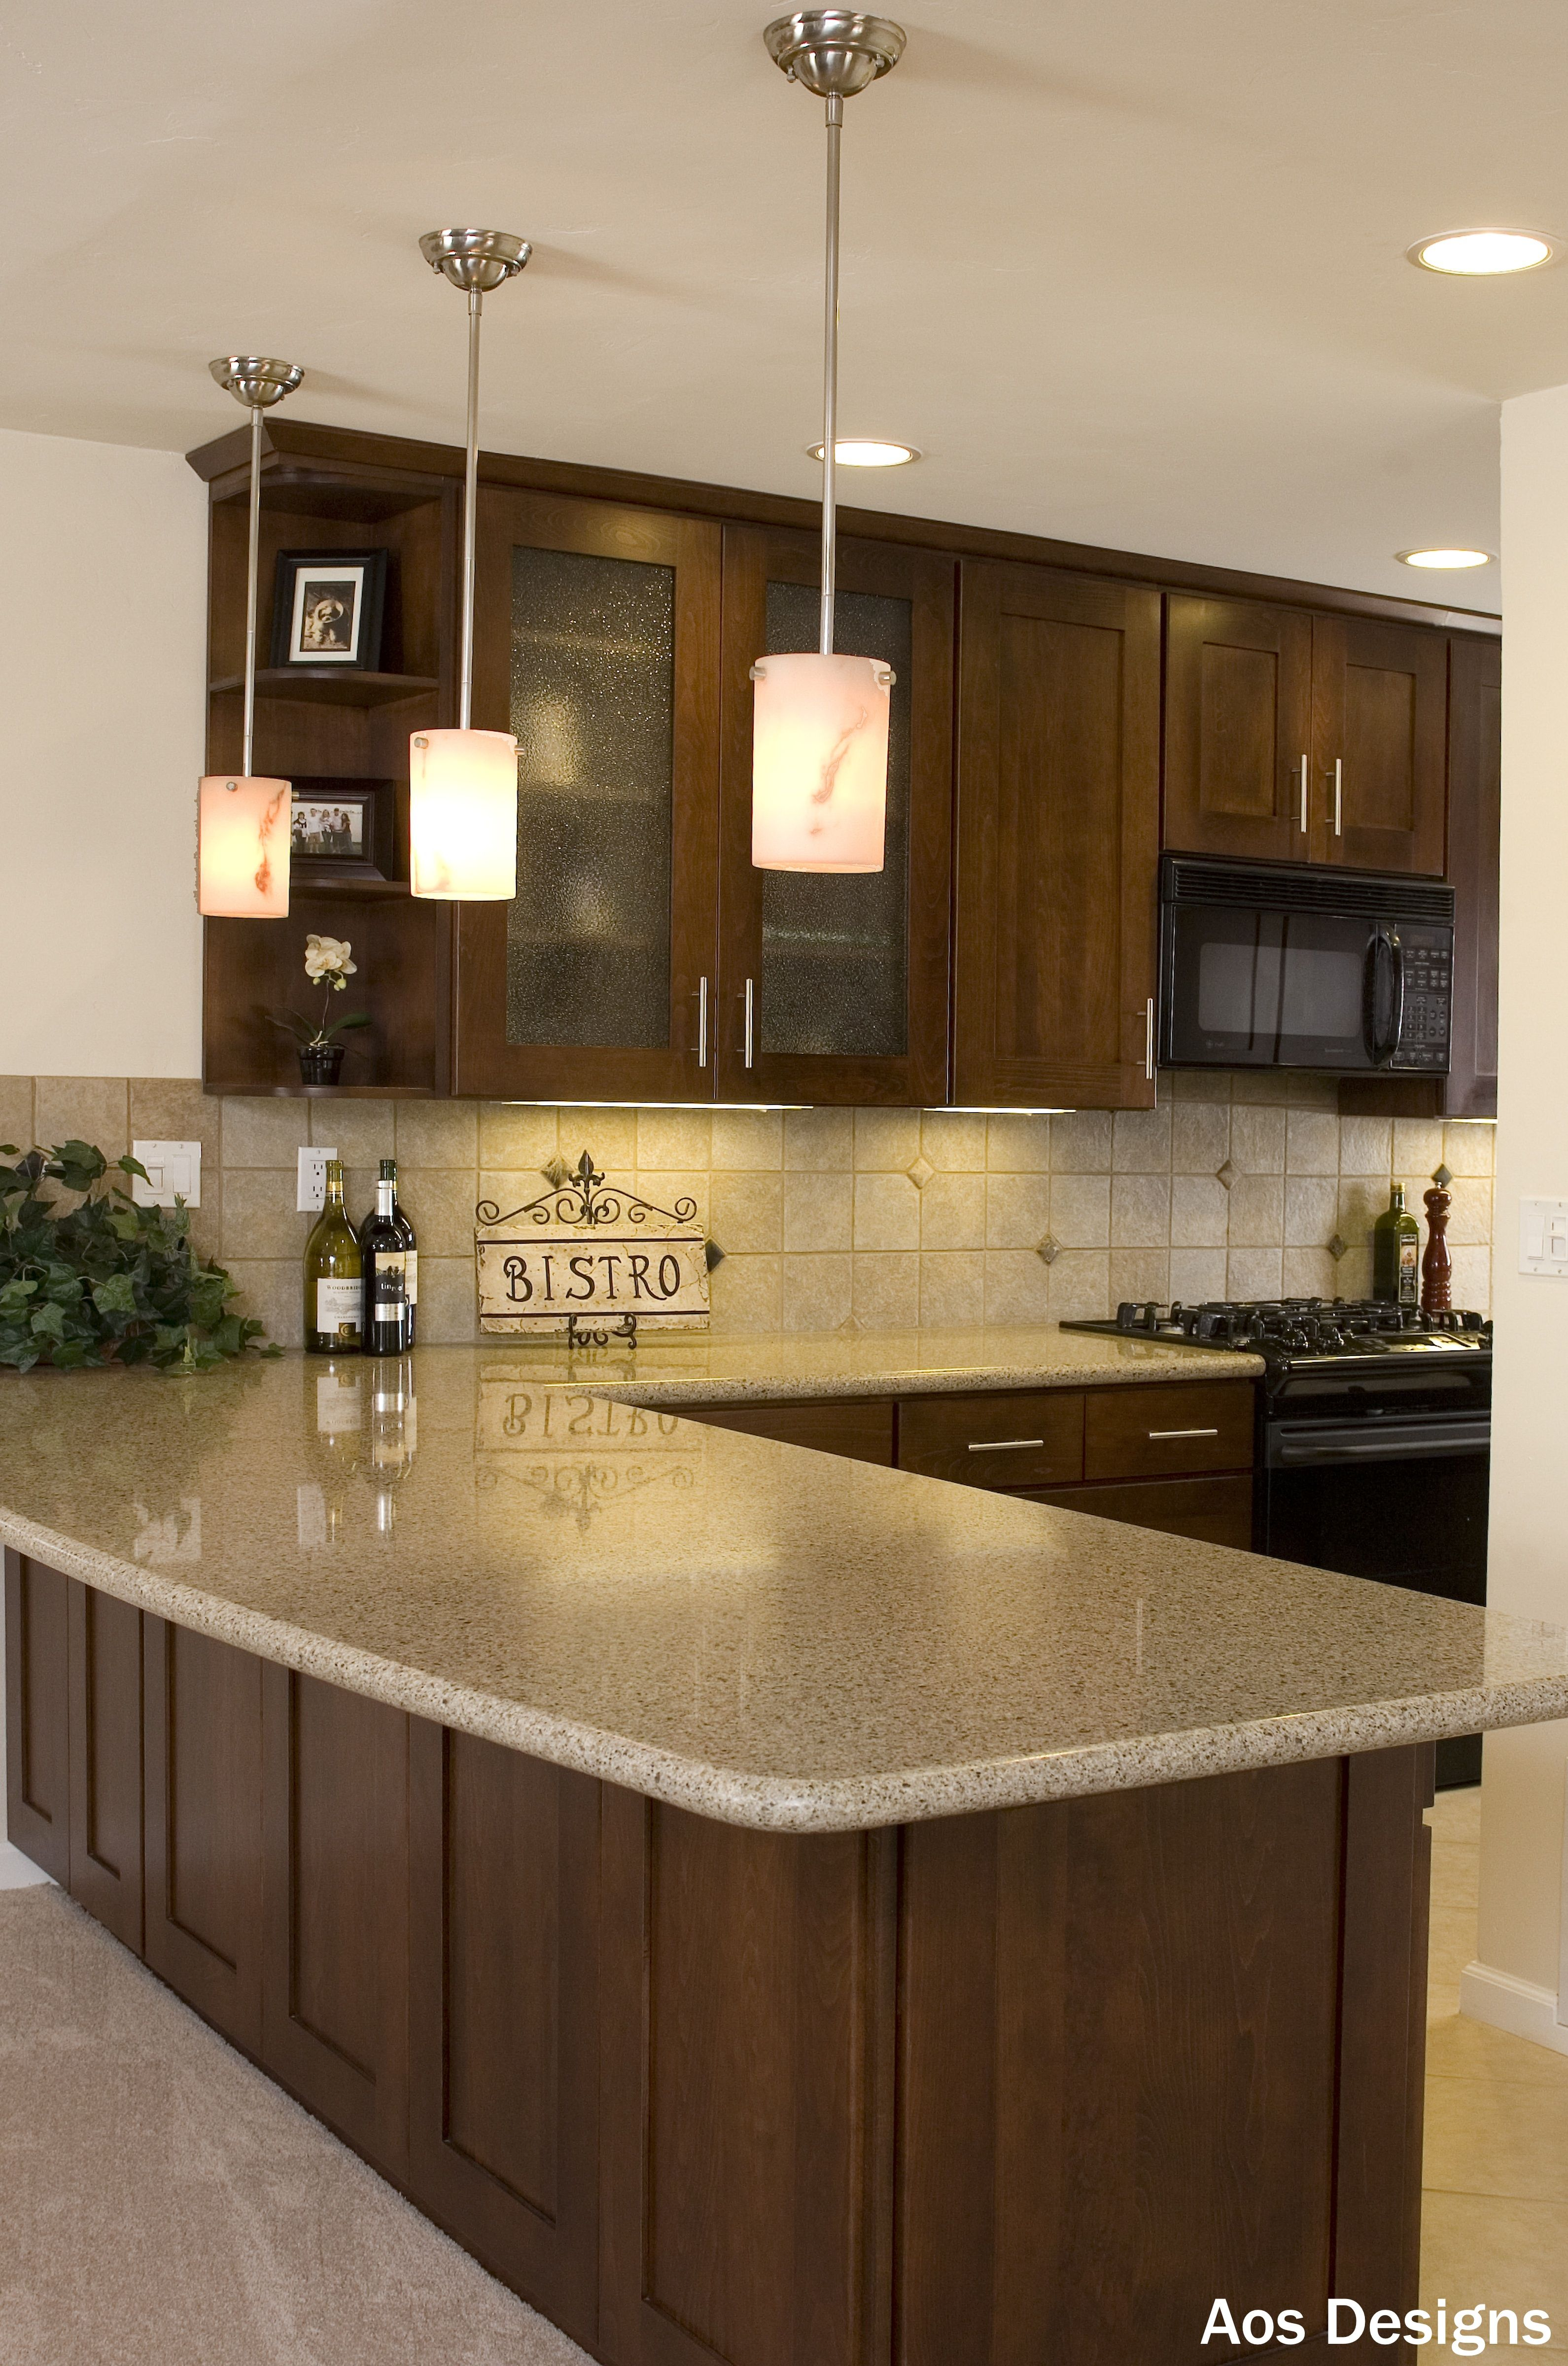 remodel a kitchen aid 5 speed blender how much does it cost to ideas those who love large granite counters pendant and undercabinet lighting can t help but fall in with this diy